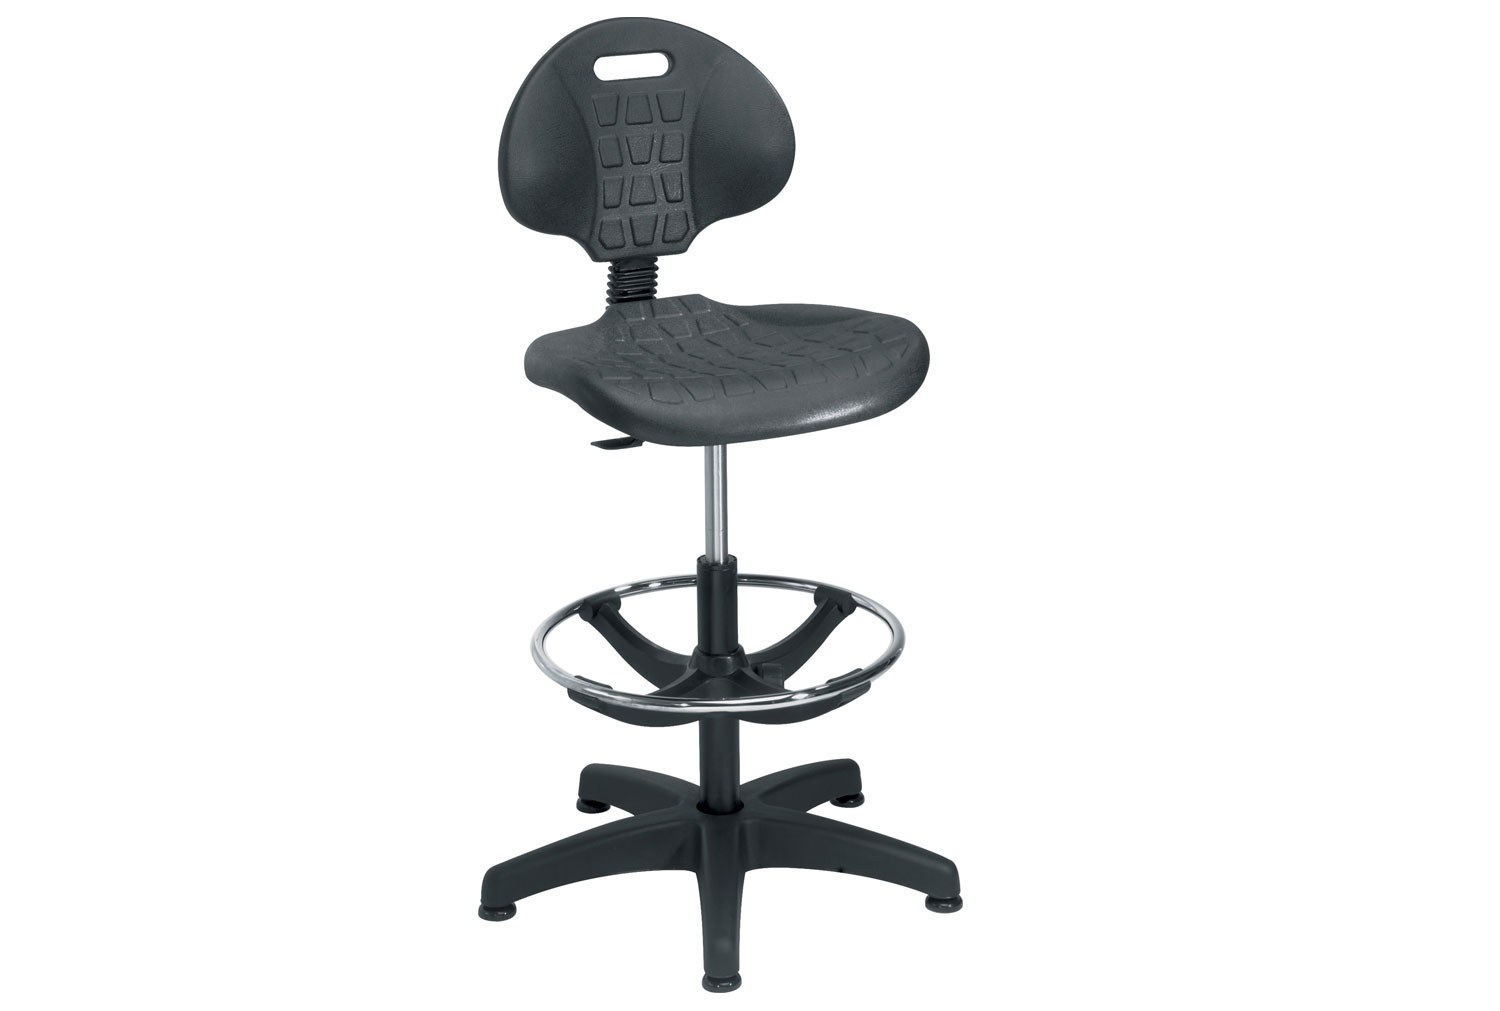 Next-Day Echo Deluxe Industrial Draughtsman Chair